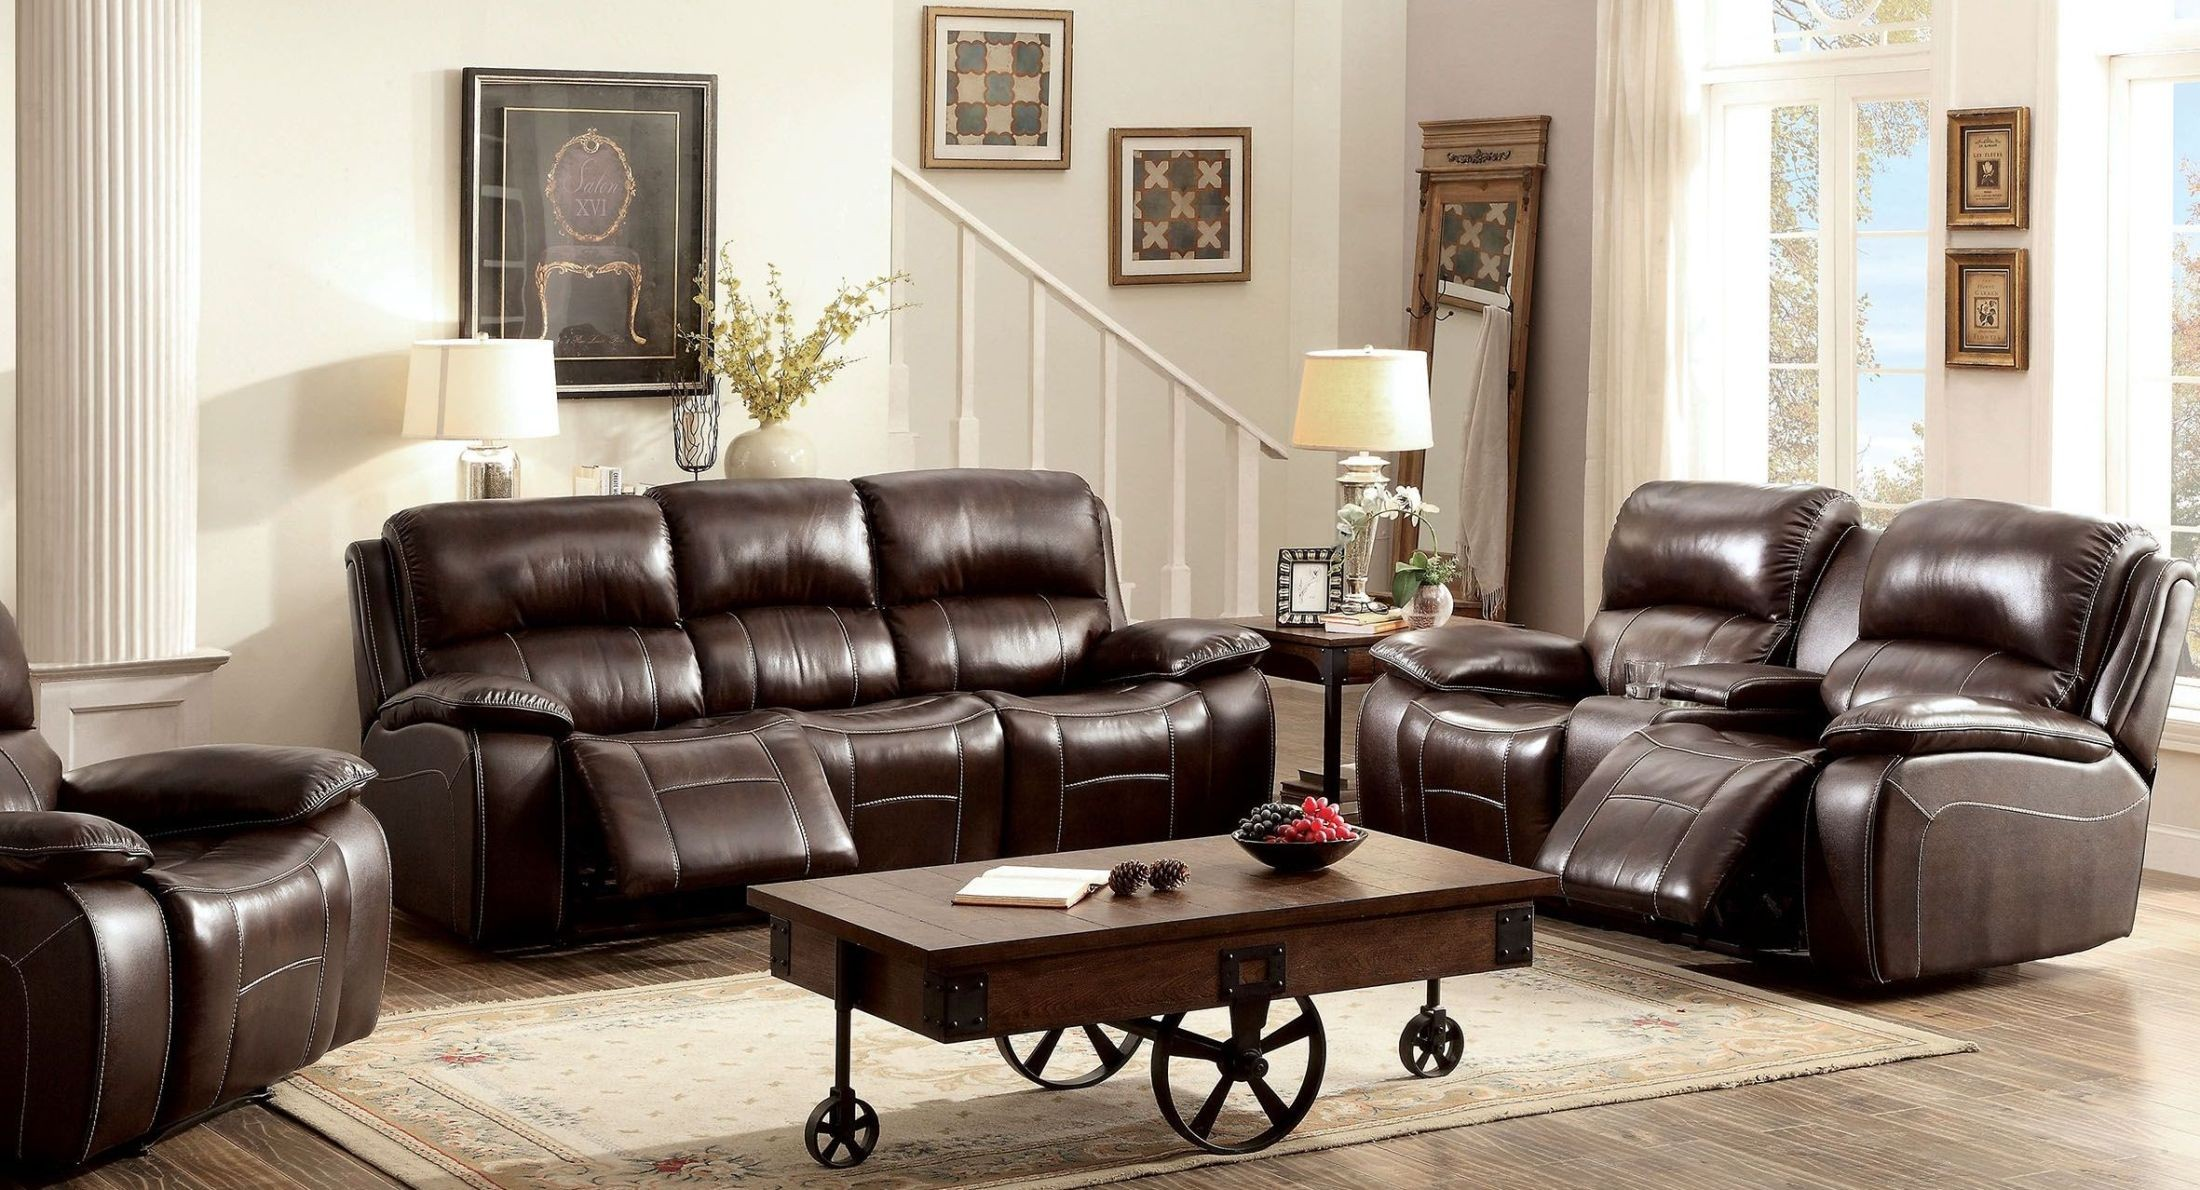 Ruth Brown Leather Reclining Living Room Set, CM6783BR